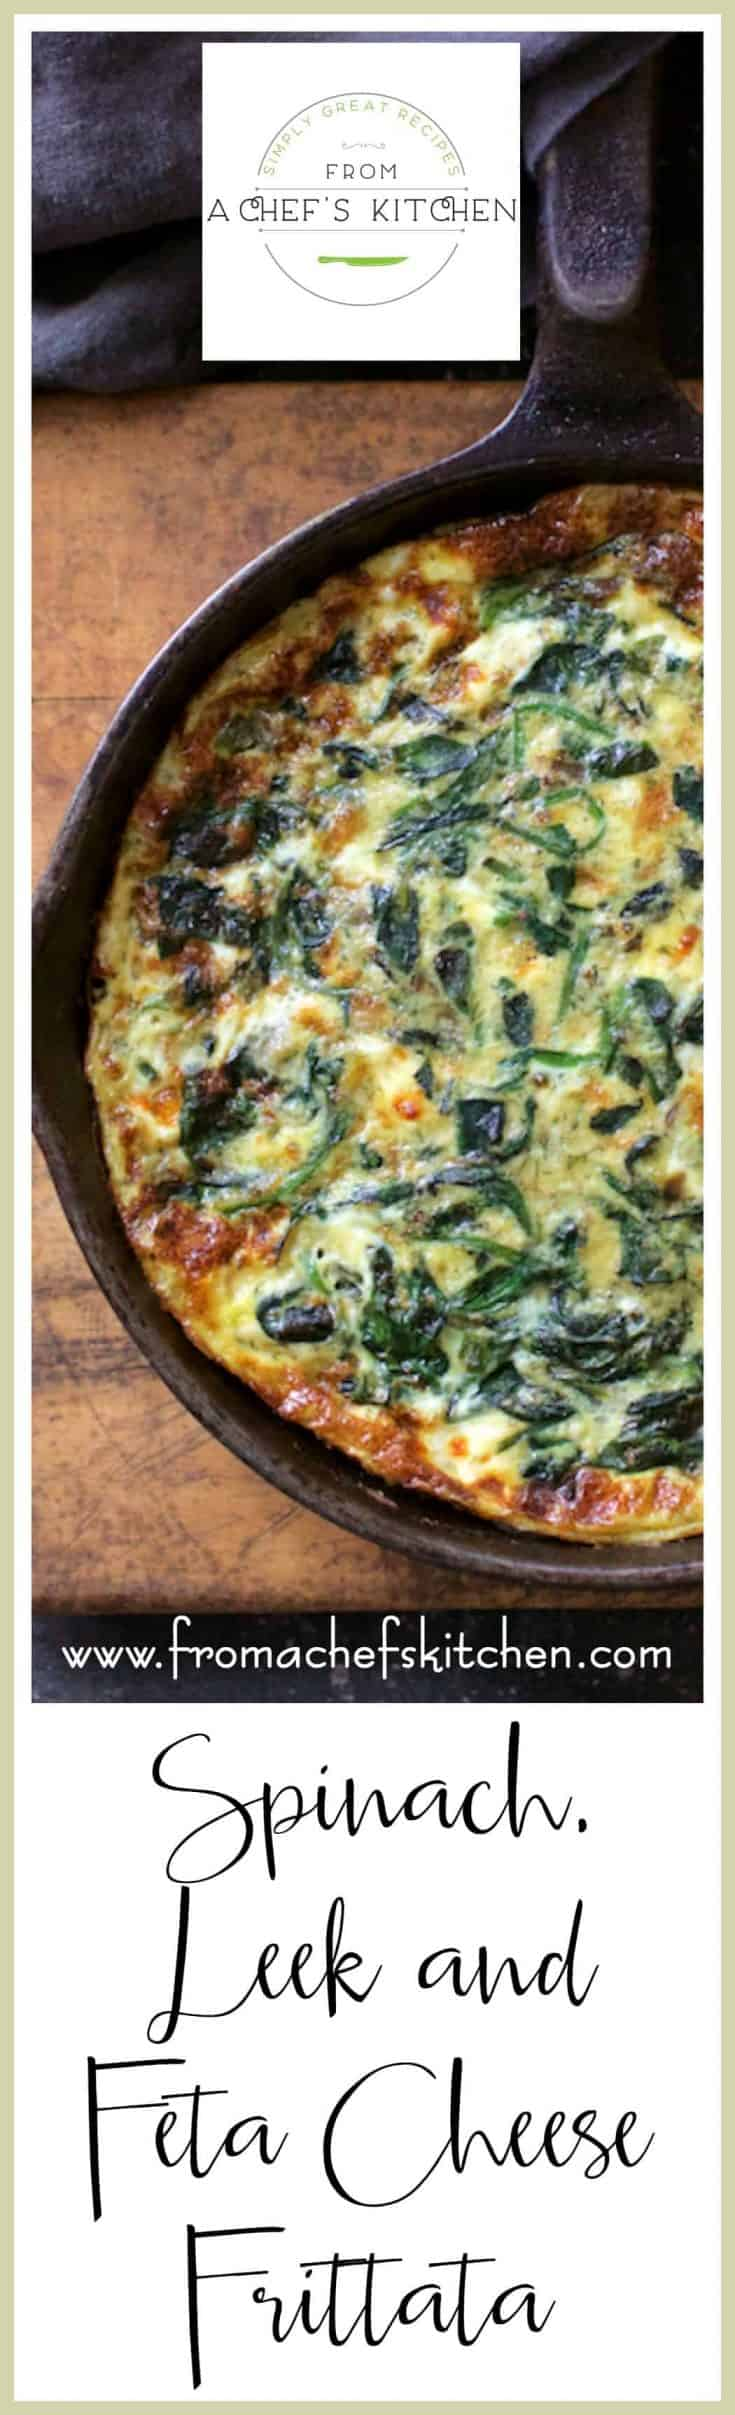 Spinach, Leek and Feta Cheese Frittata is everything! It's a Greek-inspired version of Italy's answer to the French omelet!  How's that for a super-fun dish!  #spinach #fetacheese #frittata #egg